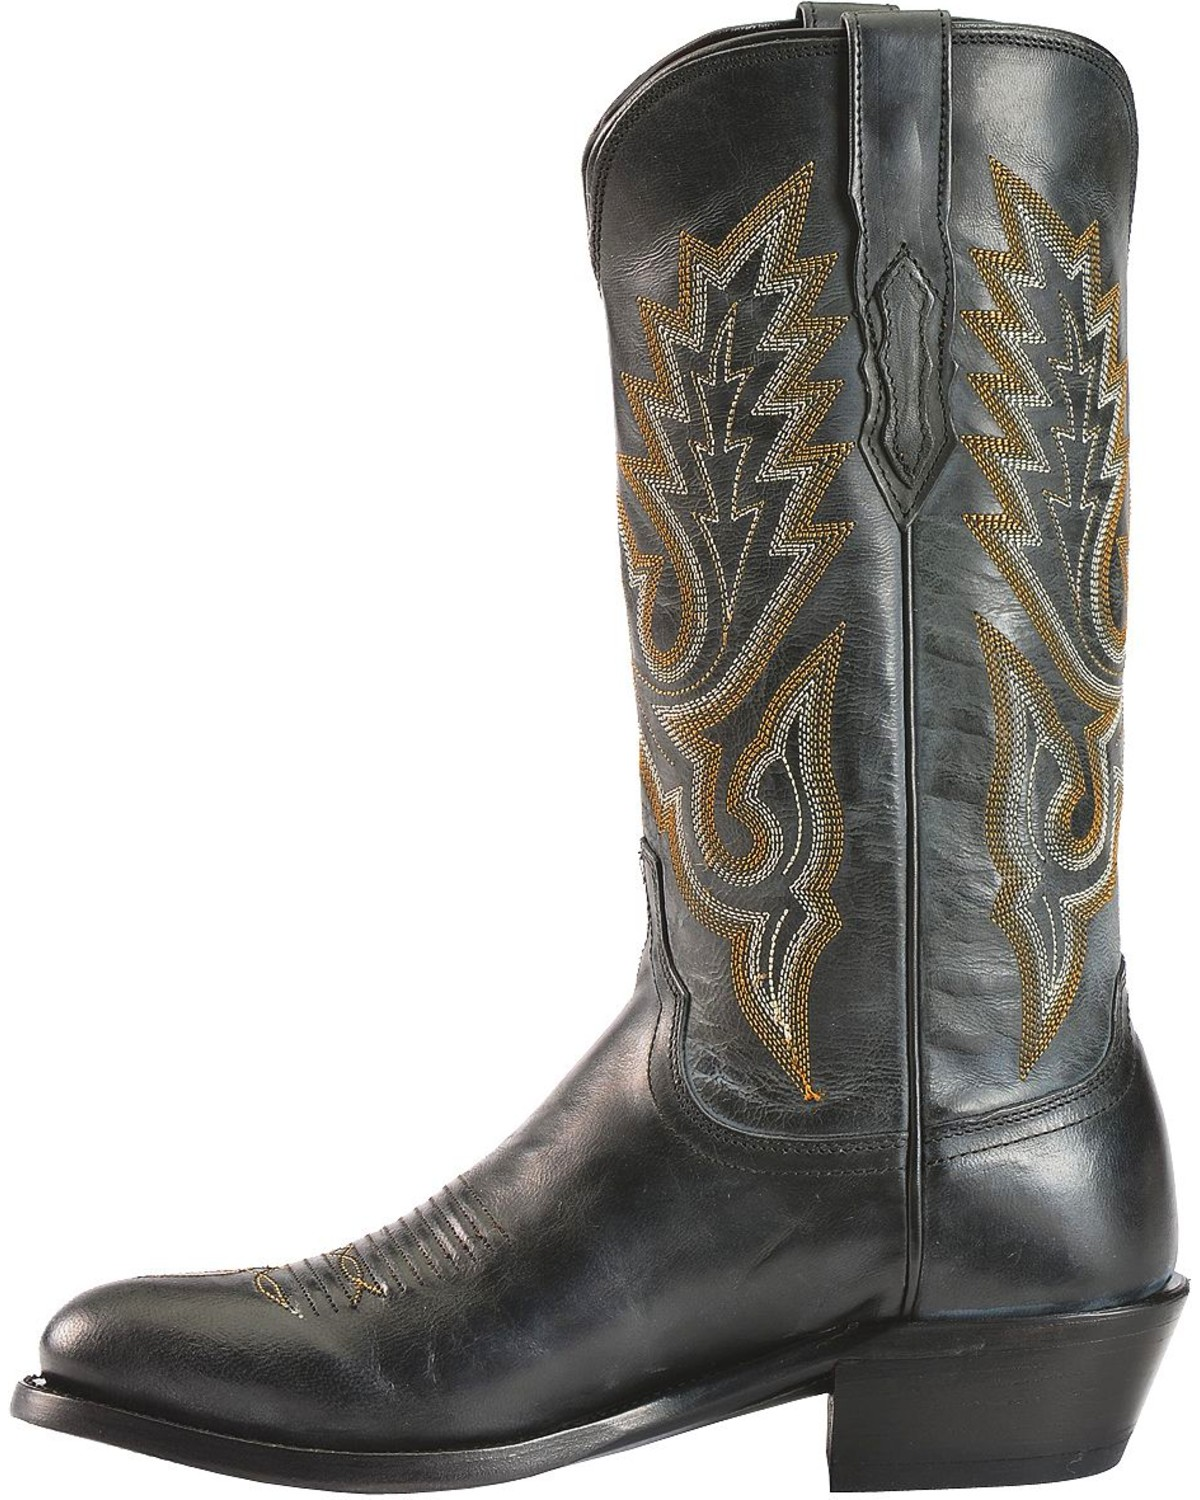 Lucchese Handmade 1883 Western Madras Goat Cowboy Boots